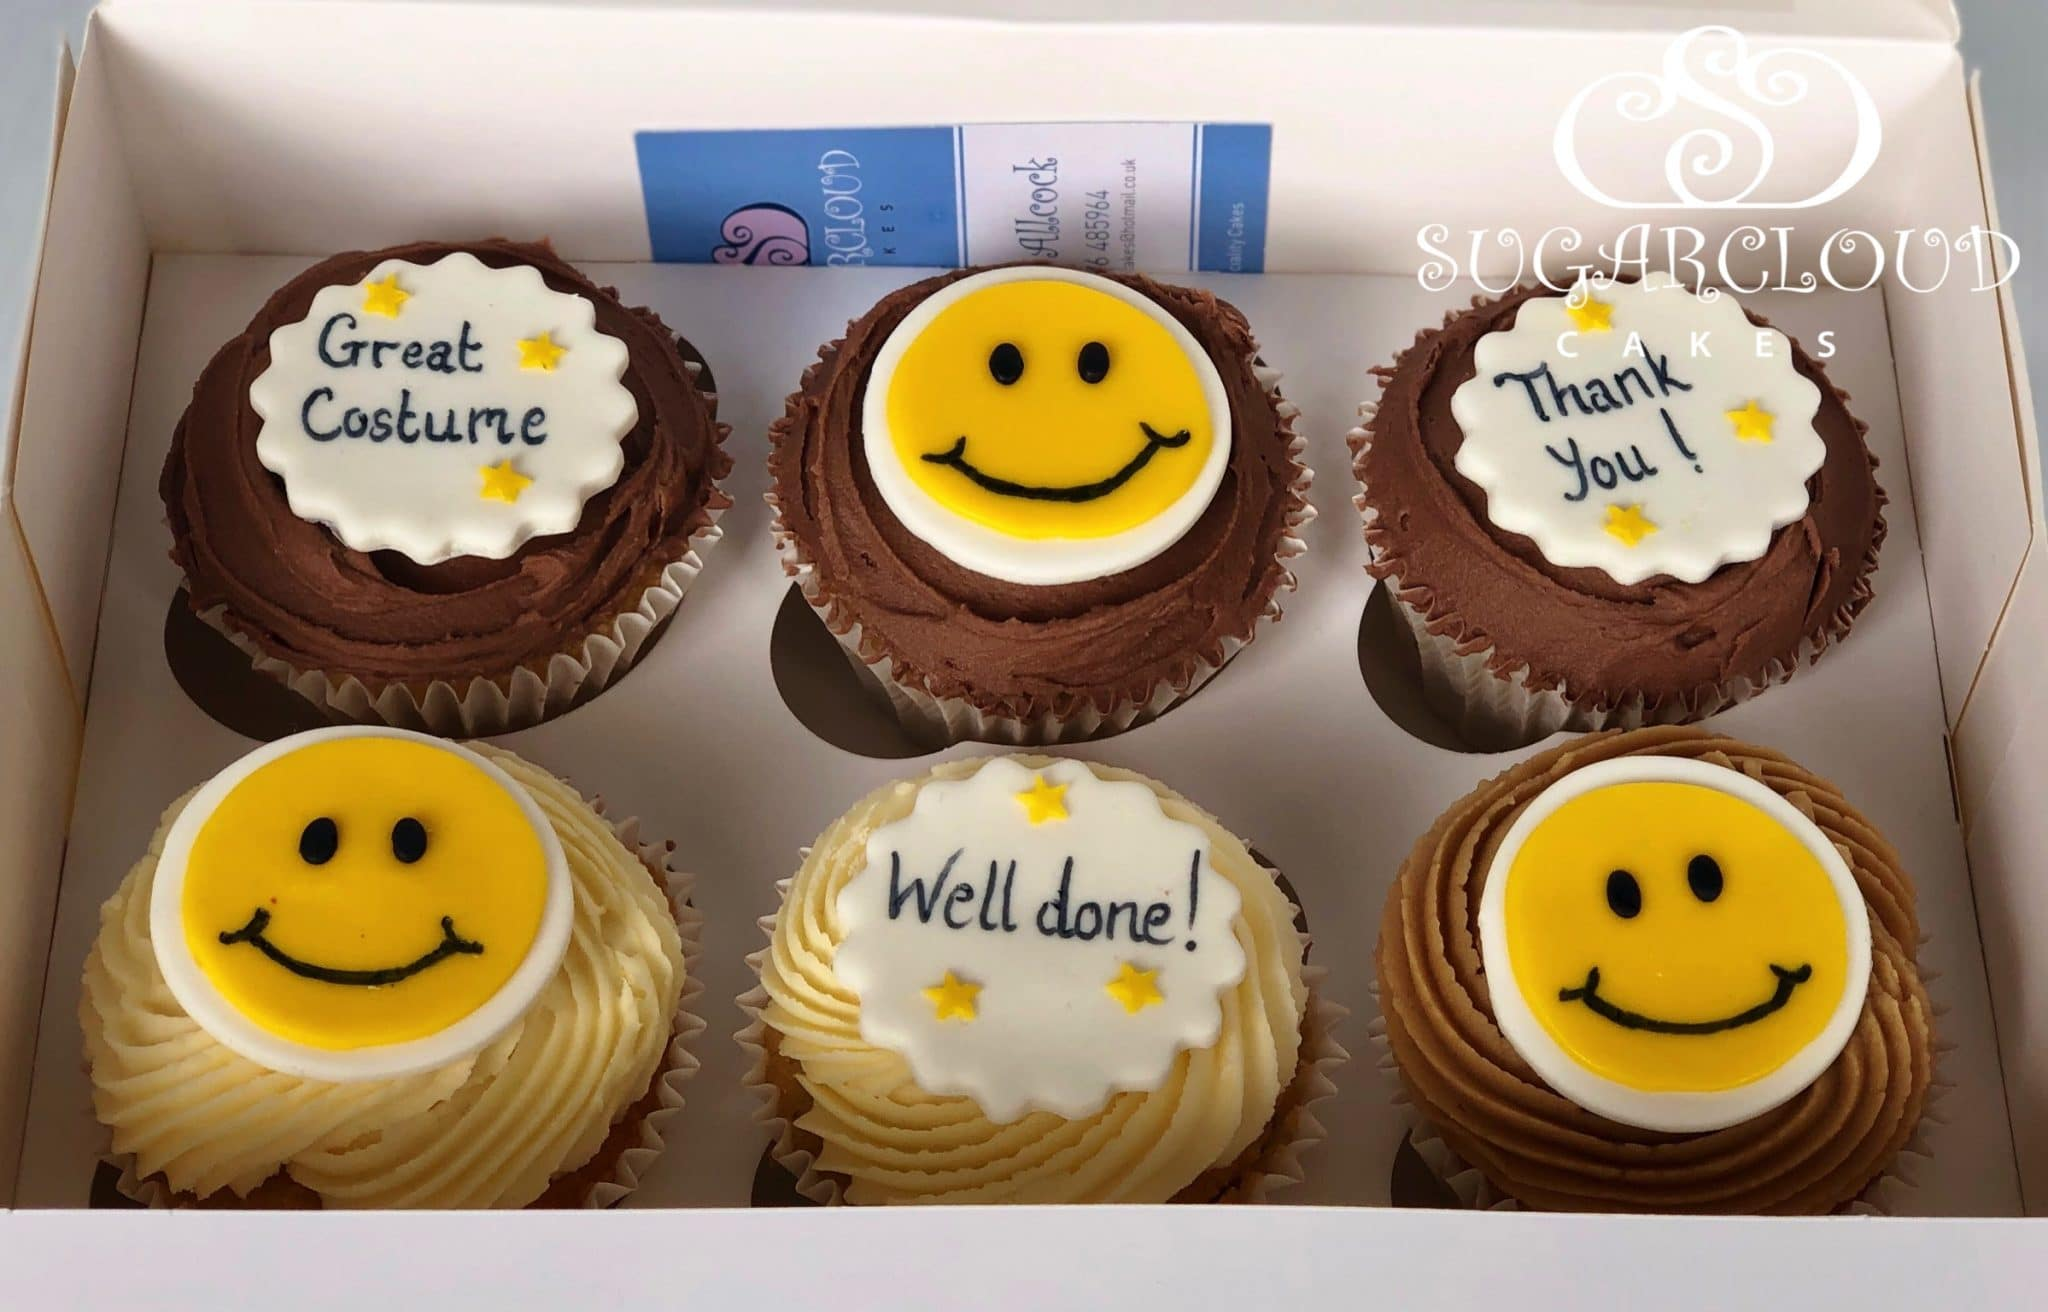 Thank you Cupcakes For A Dedicated Employee, Audlem